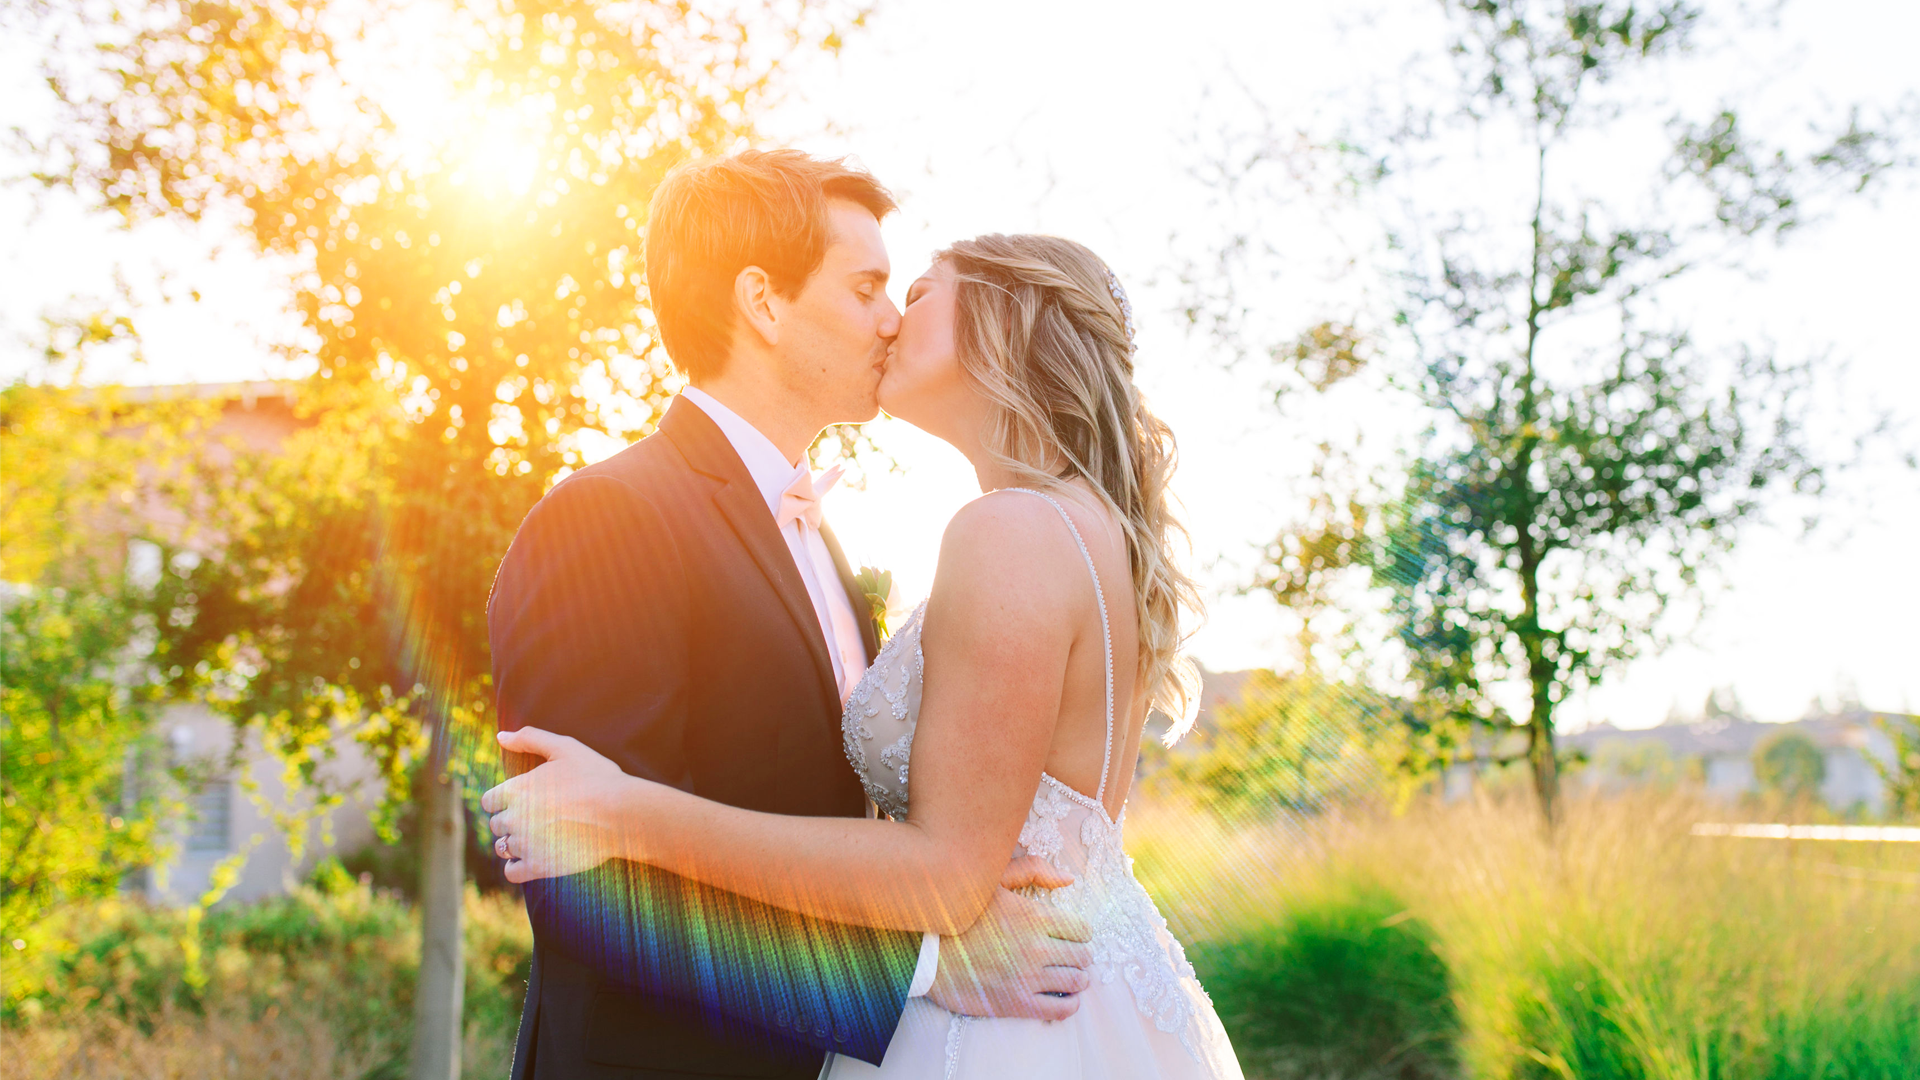 Chase + Jamison | Agoura Hills, California | Agoura Hills Recreation and Event Center